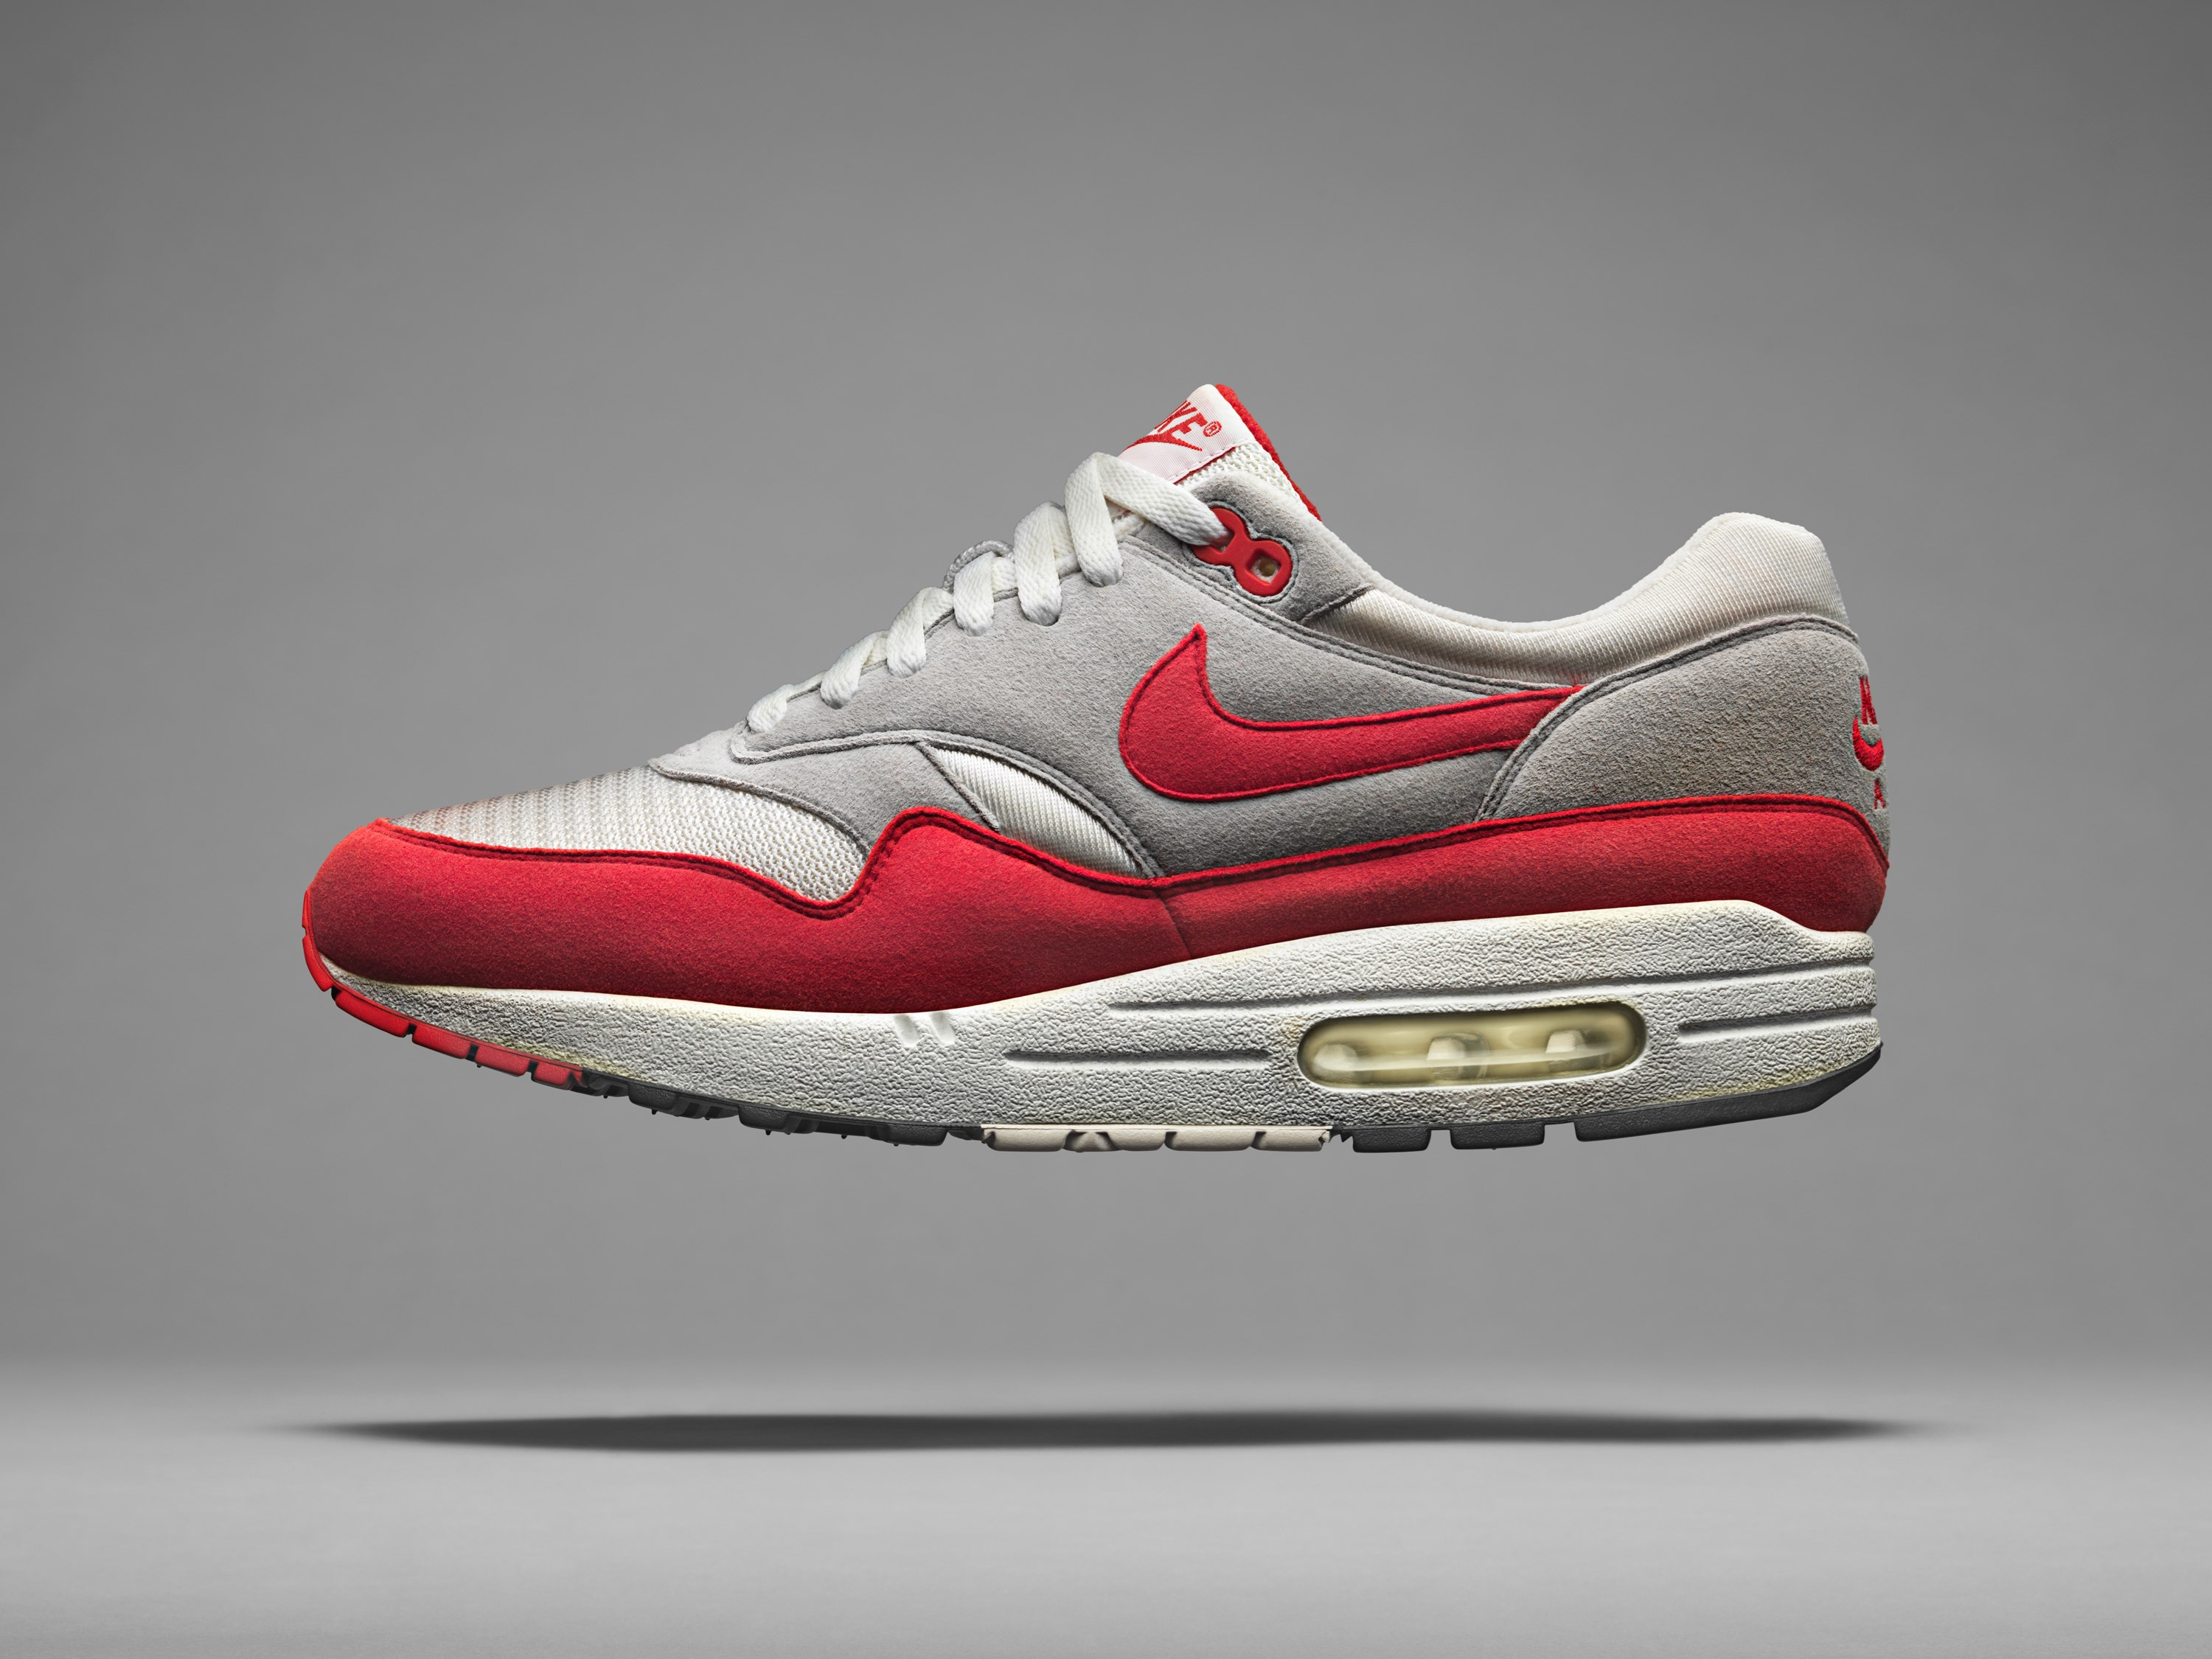 The Air Max family has evolved over the past 28 years, with hundreds of memorable make-ups, but each model owes its existence in part to the transcendent Nike Air Max 1.